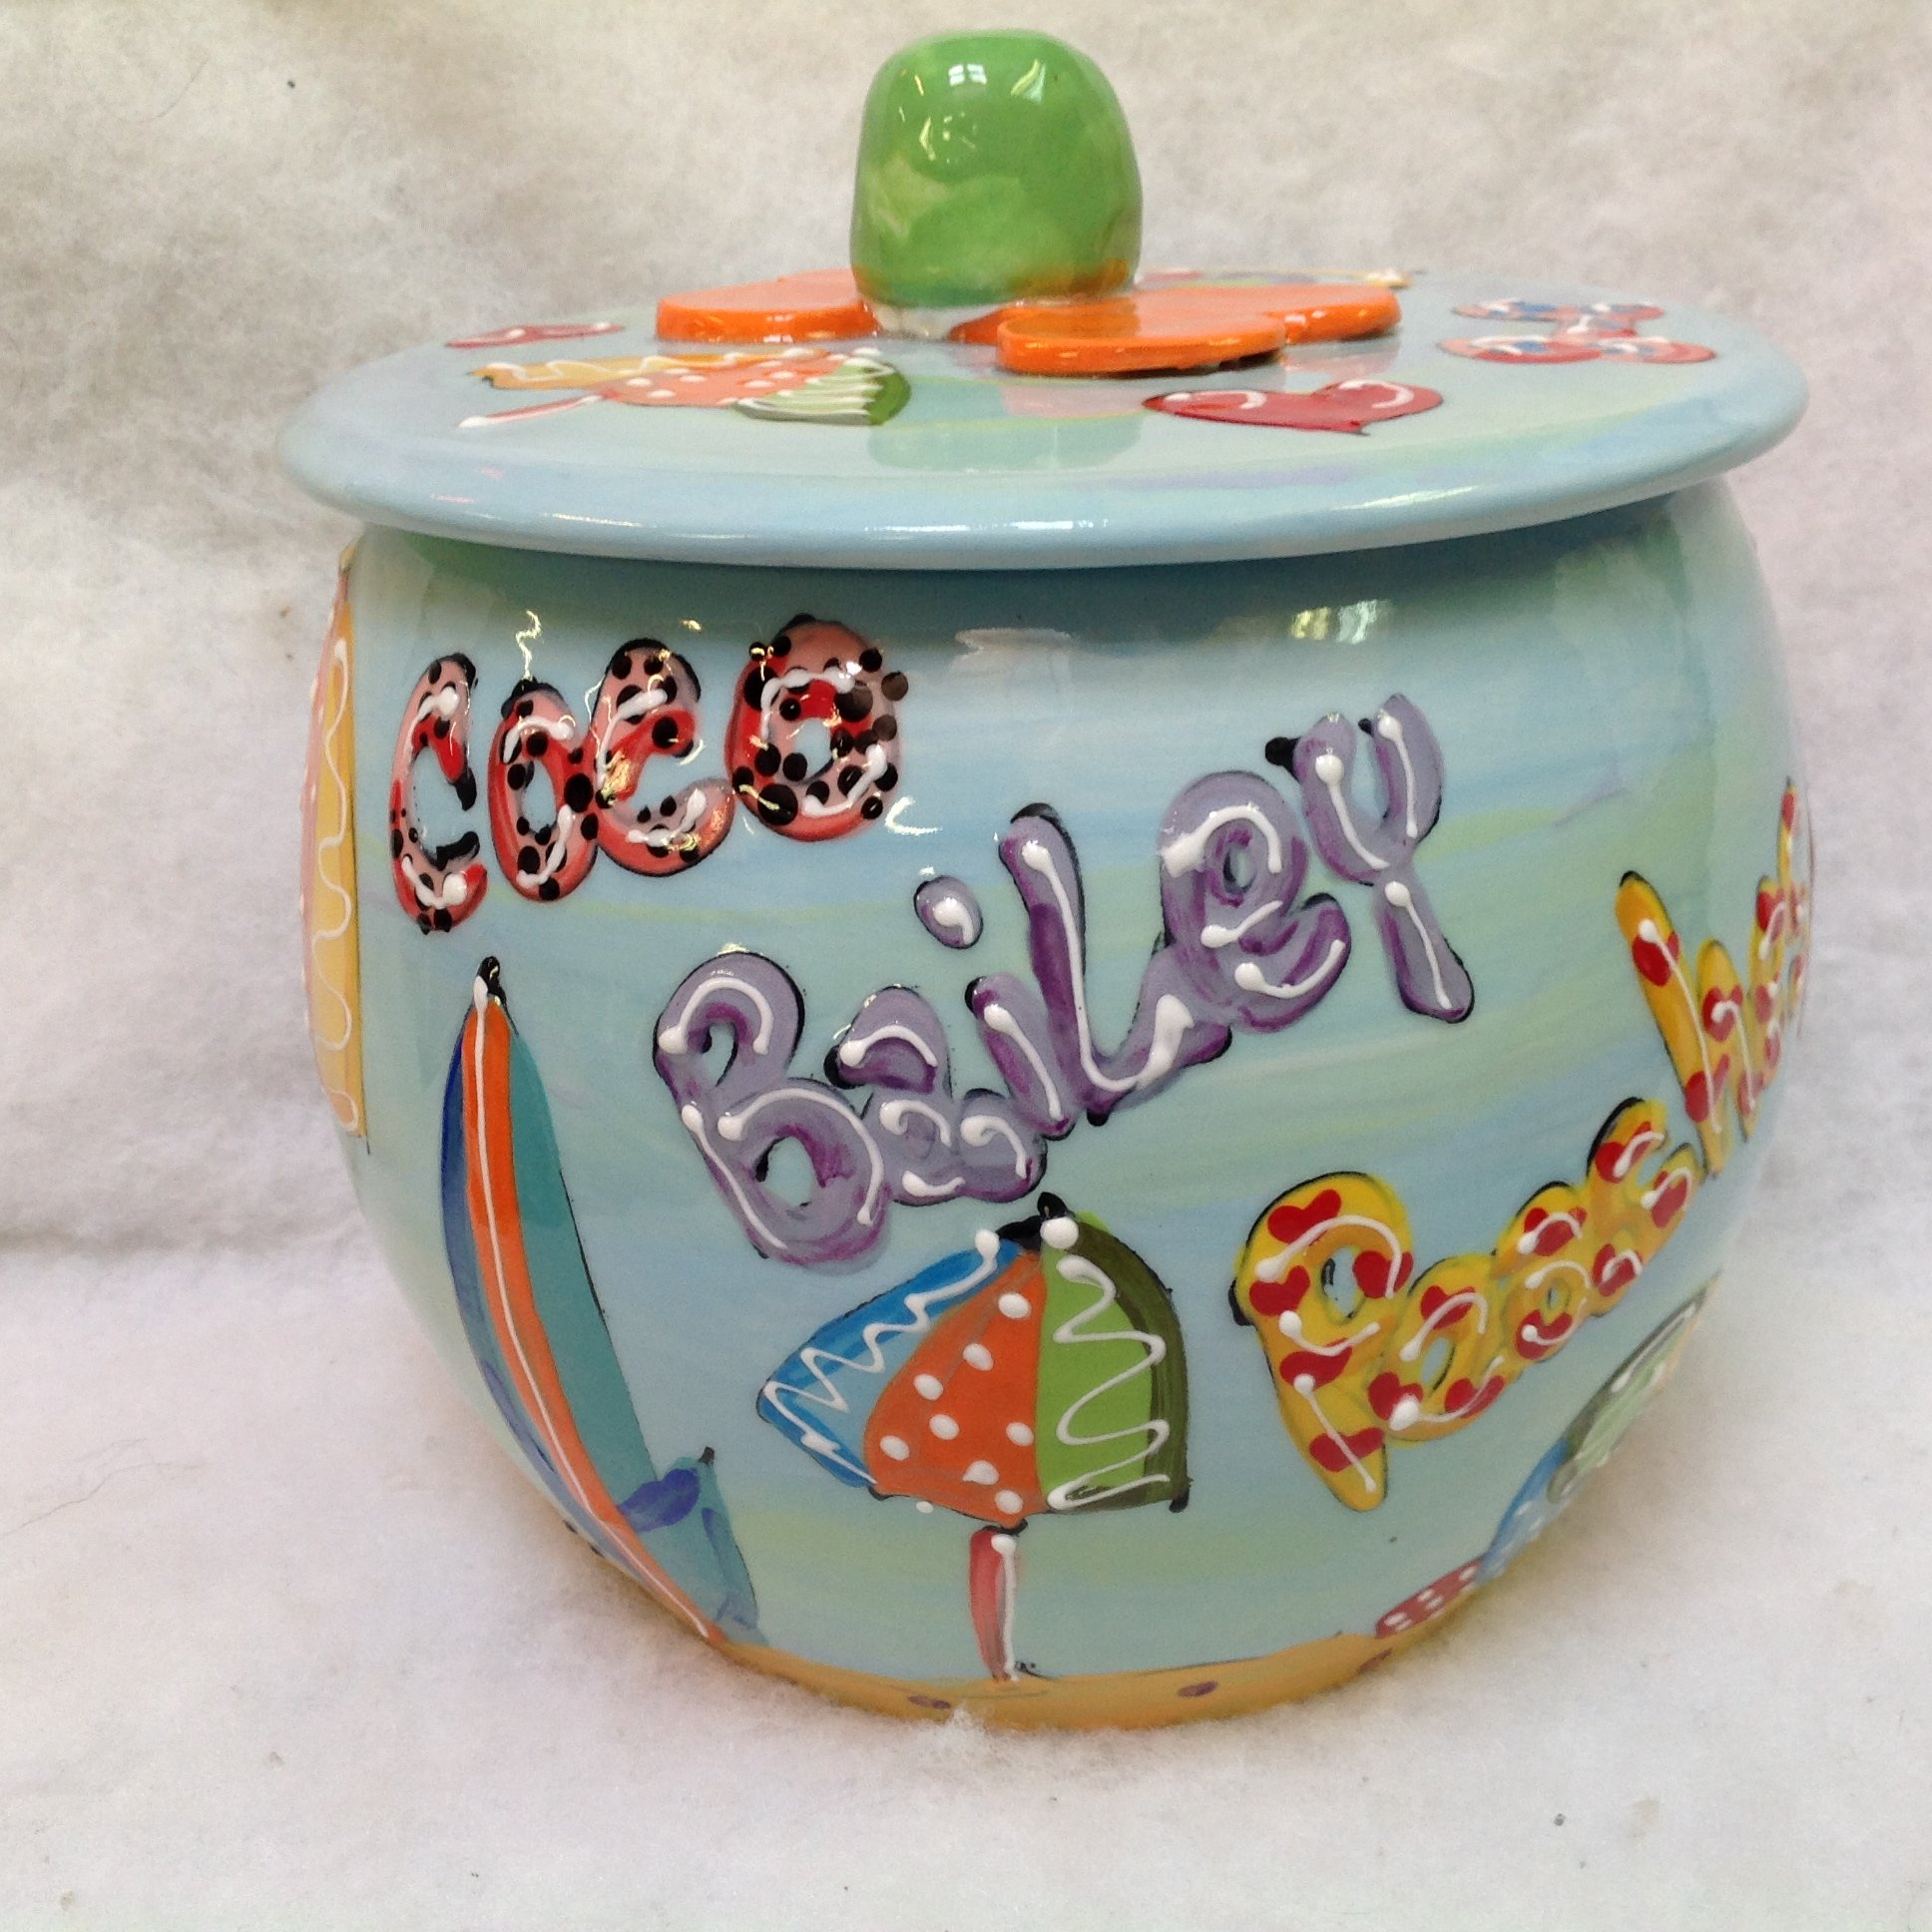 Golden Retriever Treat Jar, Personalized at no Charge. Signed by Artist, Debby Carman.